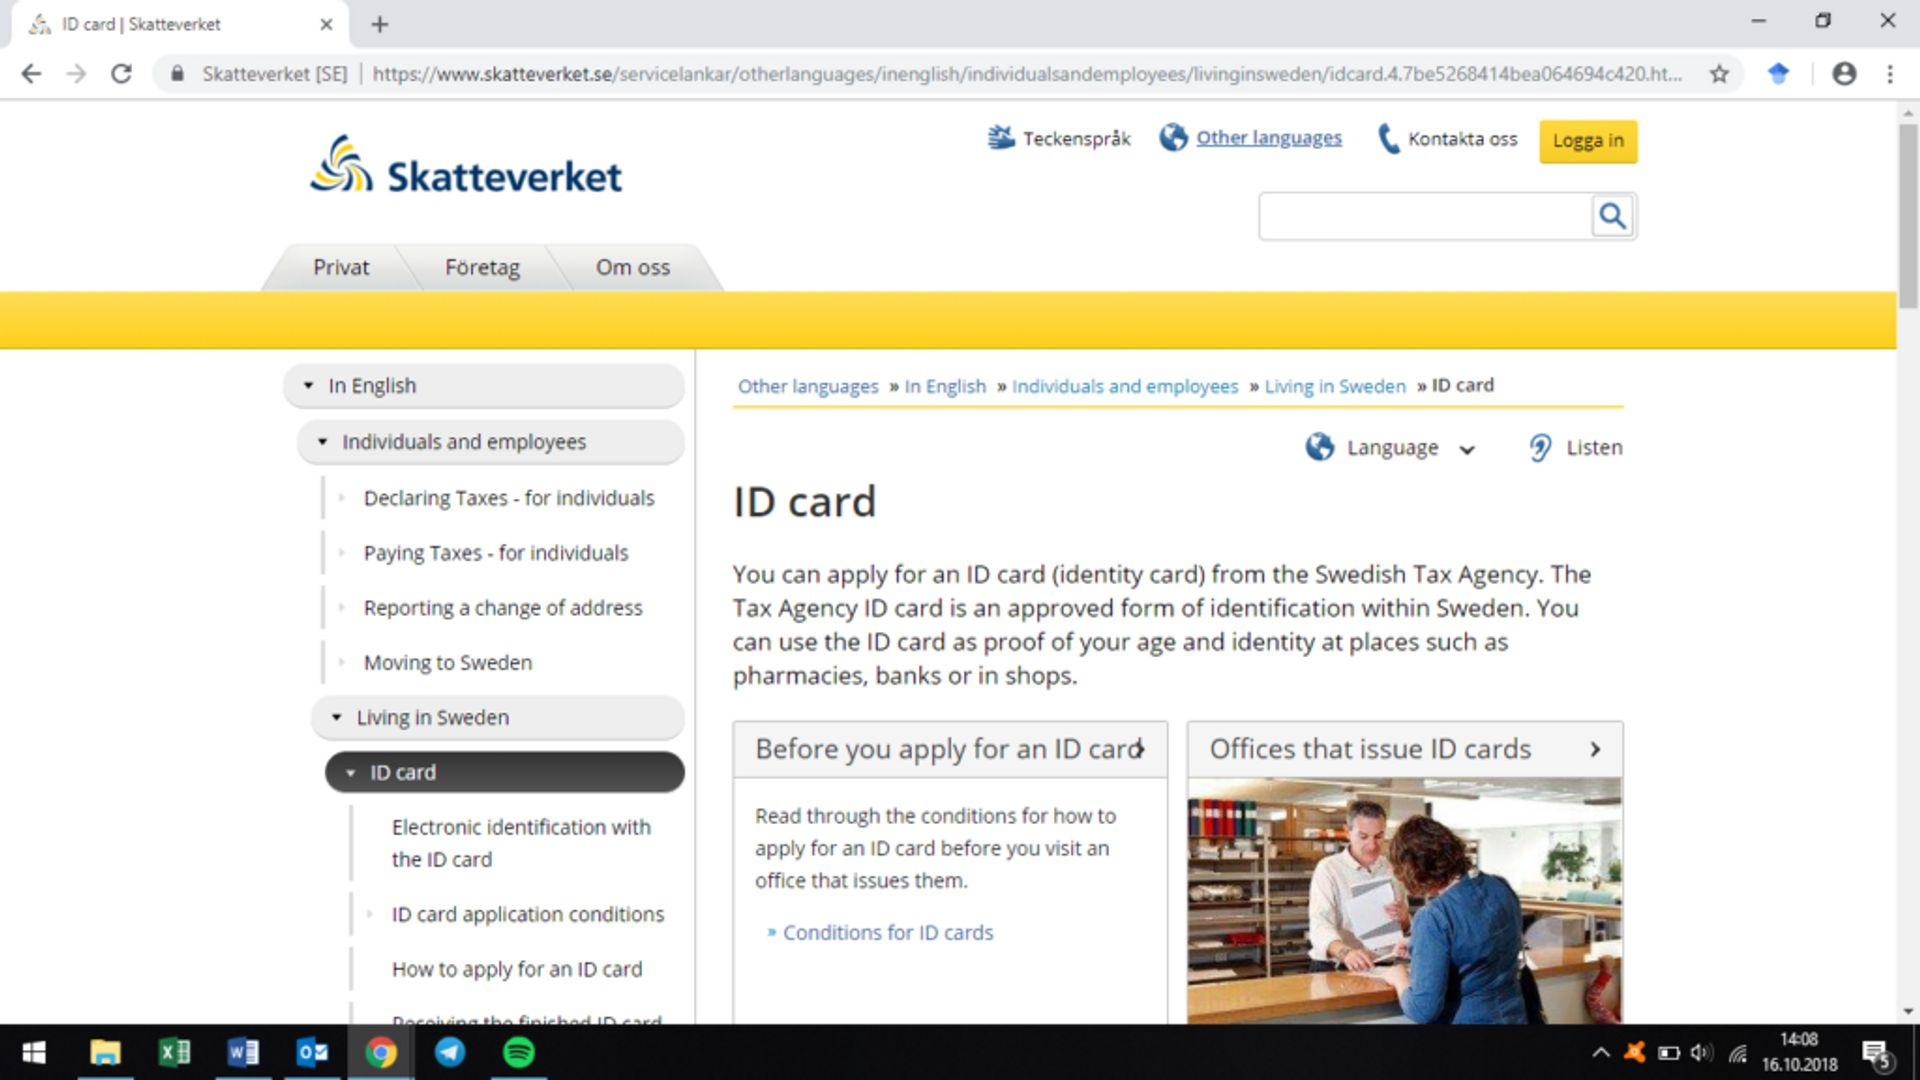 Screenshot showing how to apply for an ID card.